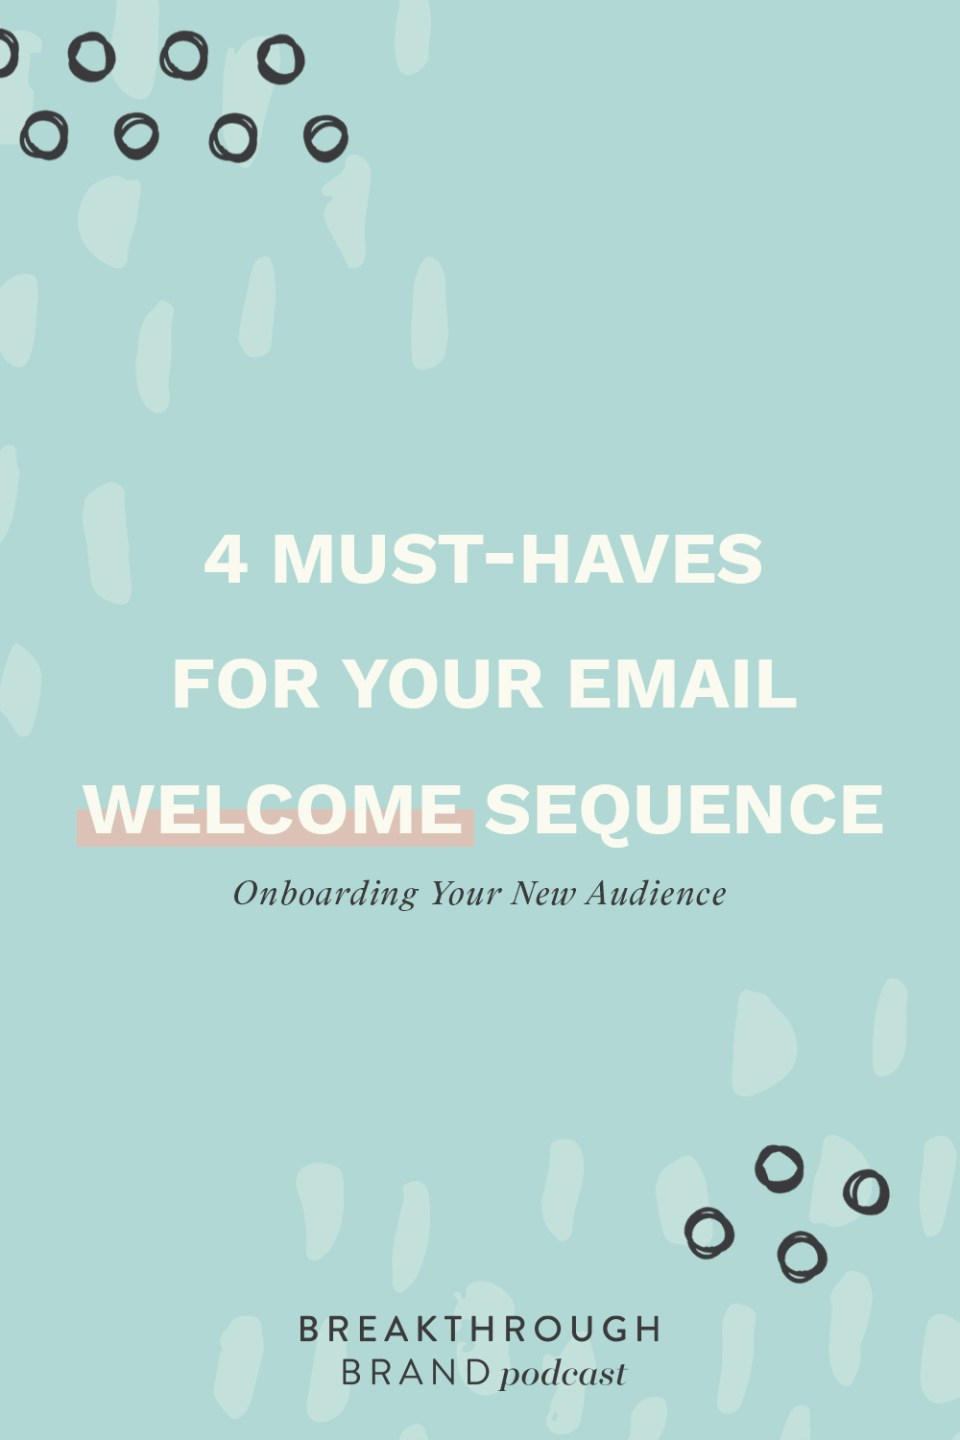 Learn the 4 must-have things for your welcome email sequence and onboarding new people to your email list on the Breakthrough Brand Podcast.